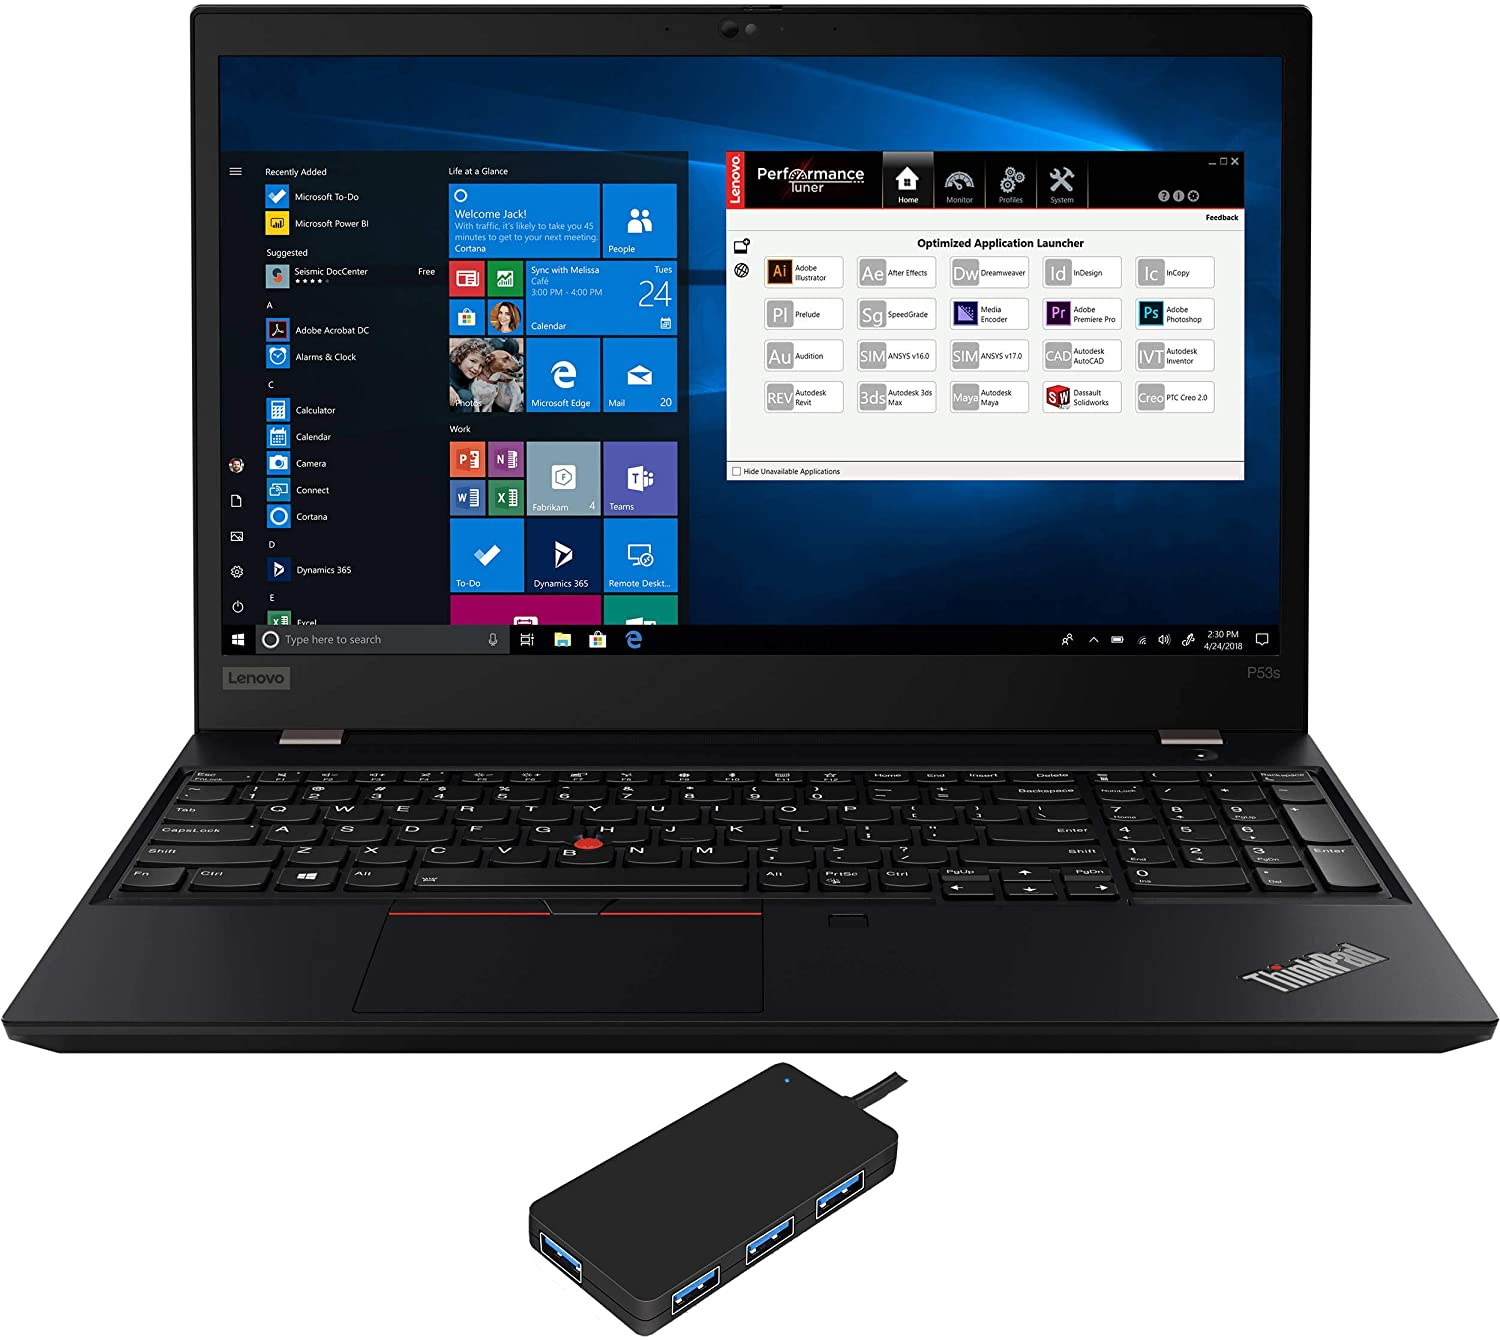 "Lenovo ThinkPad P53s Workstation Laptop (Intel i7-8565U 4-Core, 40GB RAM, 1TB m.2 SATA SSD, Quadro P520, 15.6"" Full HD (1920x1080), Fingerprint, WiFi, Bluetooth, Webcam, Win 10 Pro) with USB3.0 Hub"